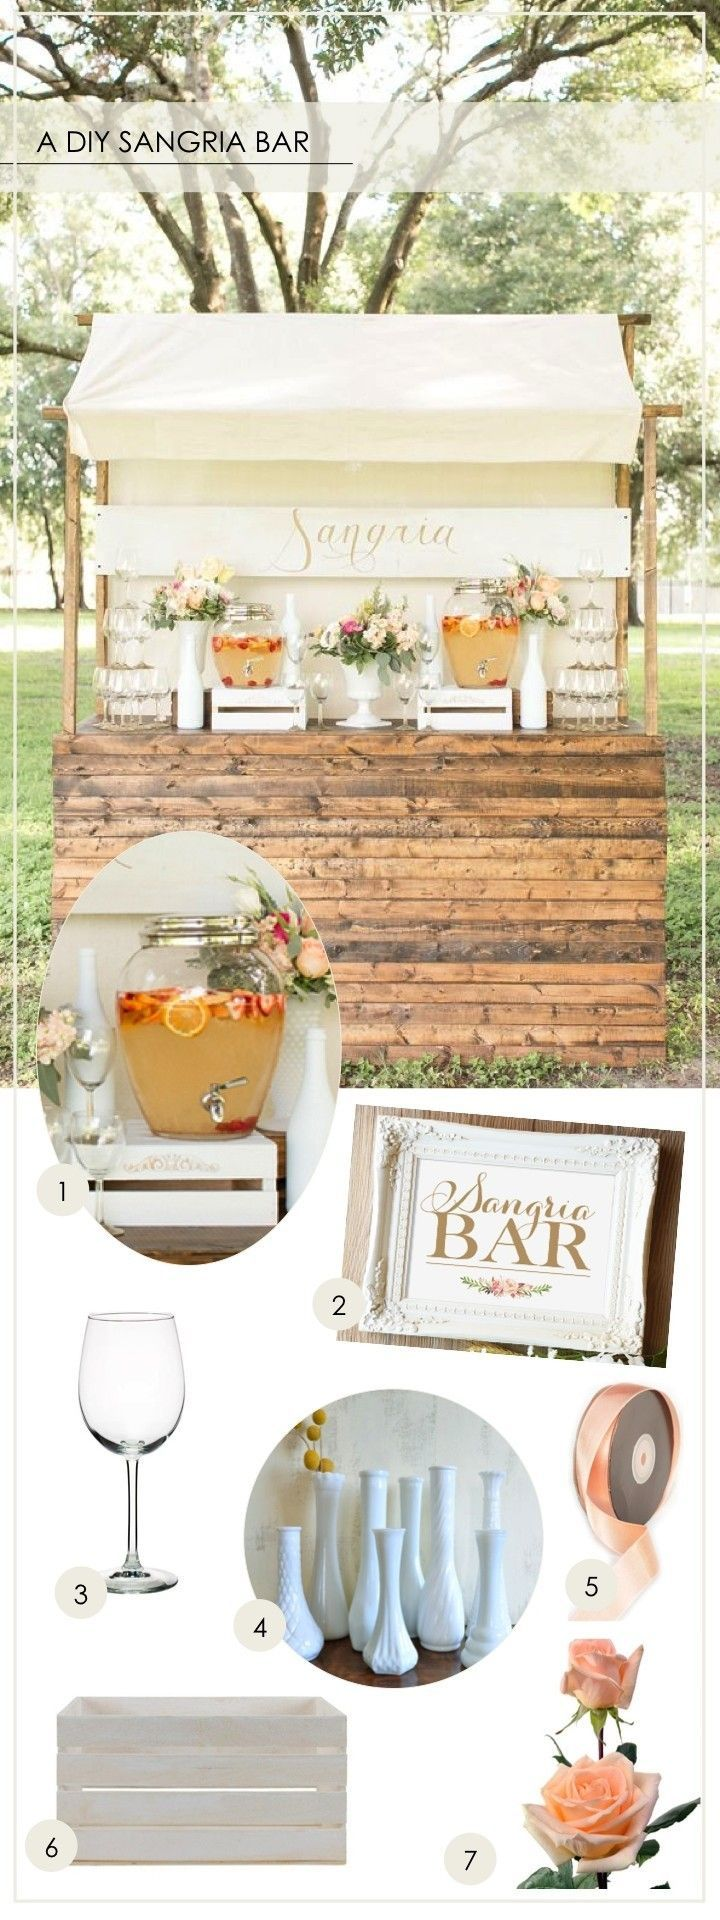 A diy sangria bar do it yourself today pinterest sangria bar a diy sangria bar solutioingenieria Image collections